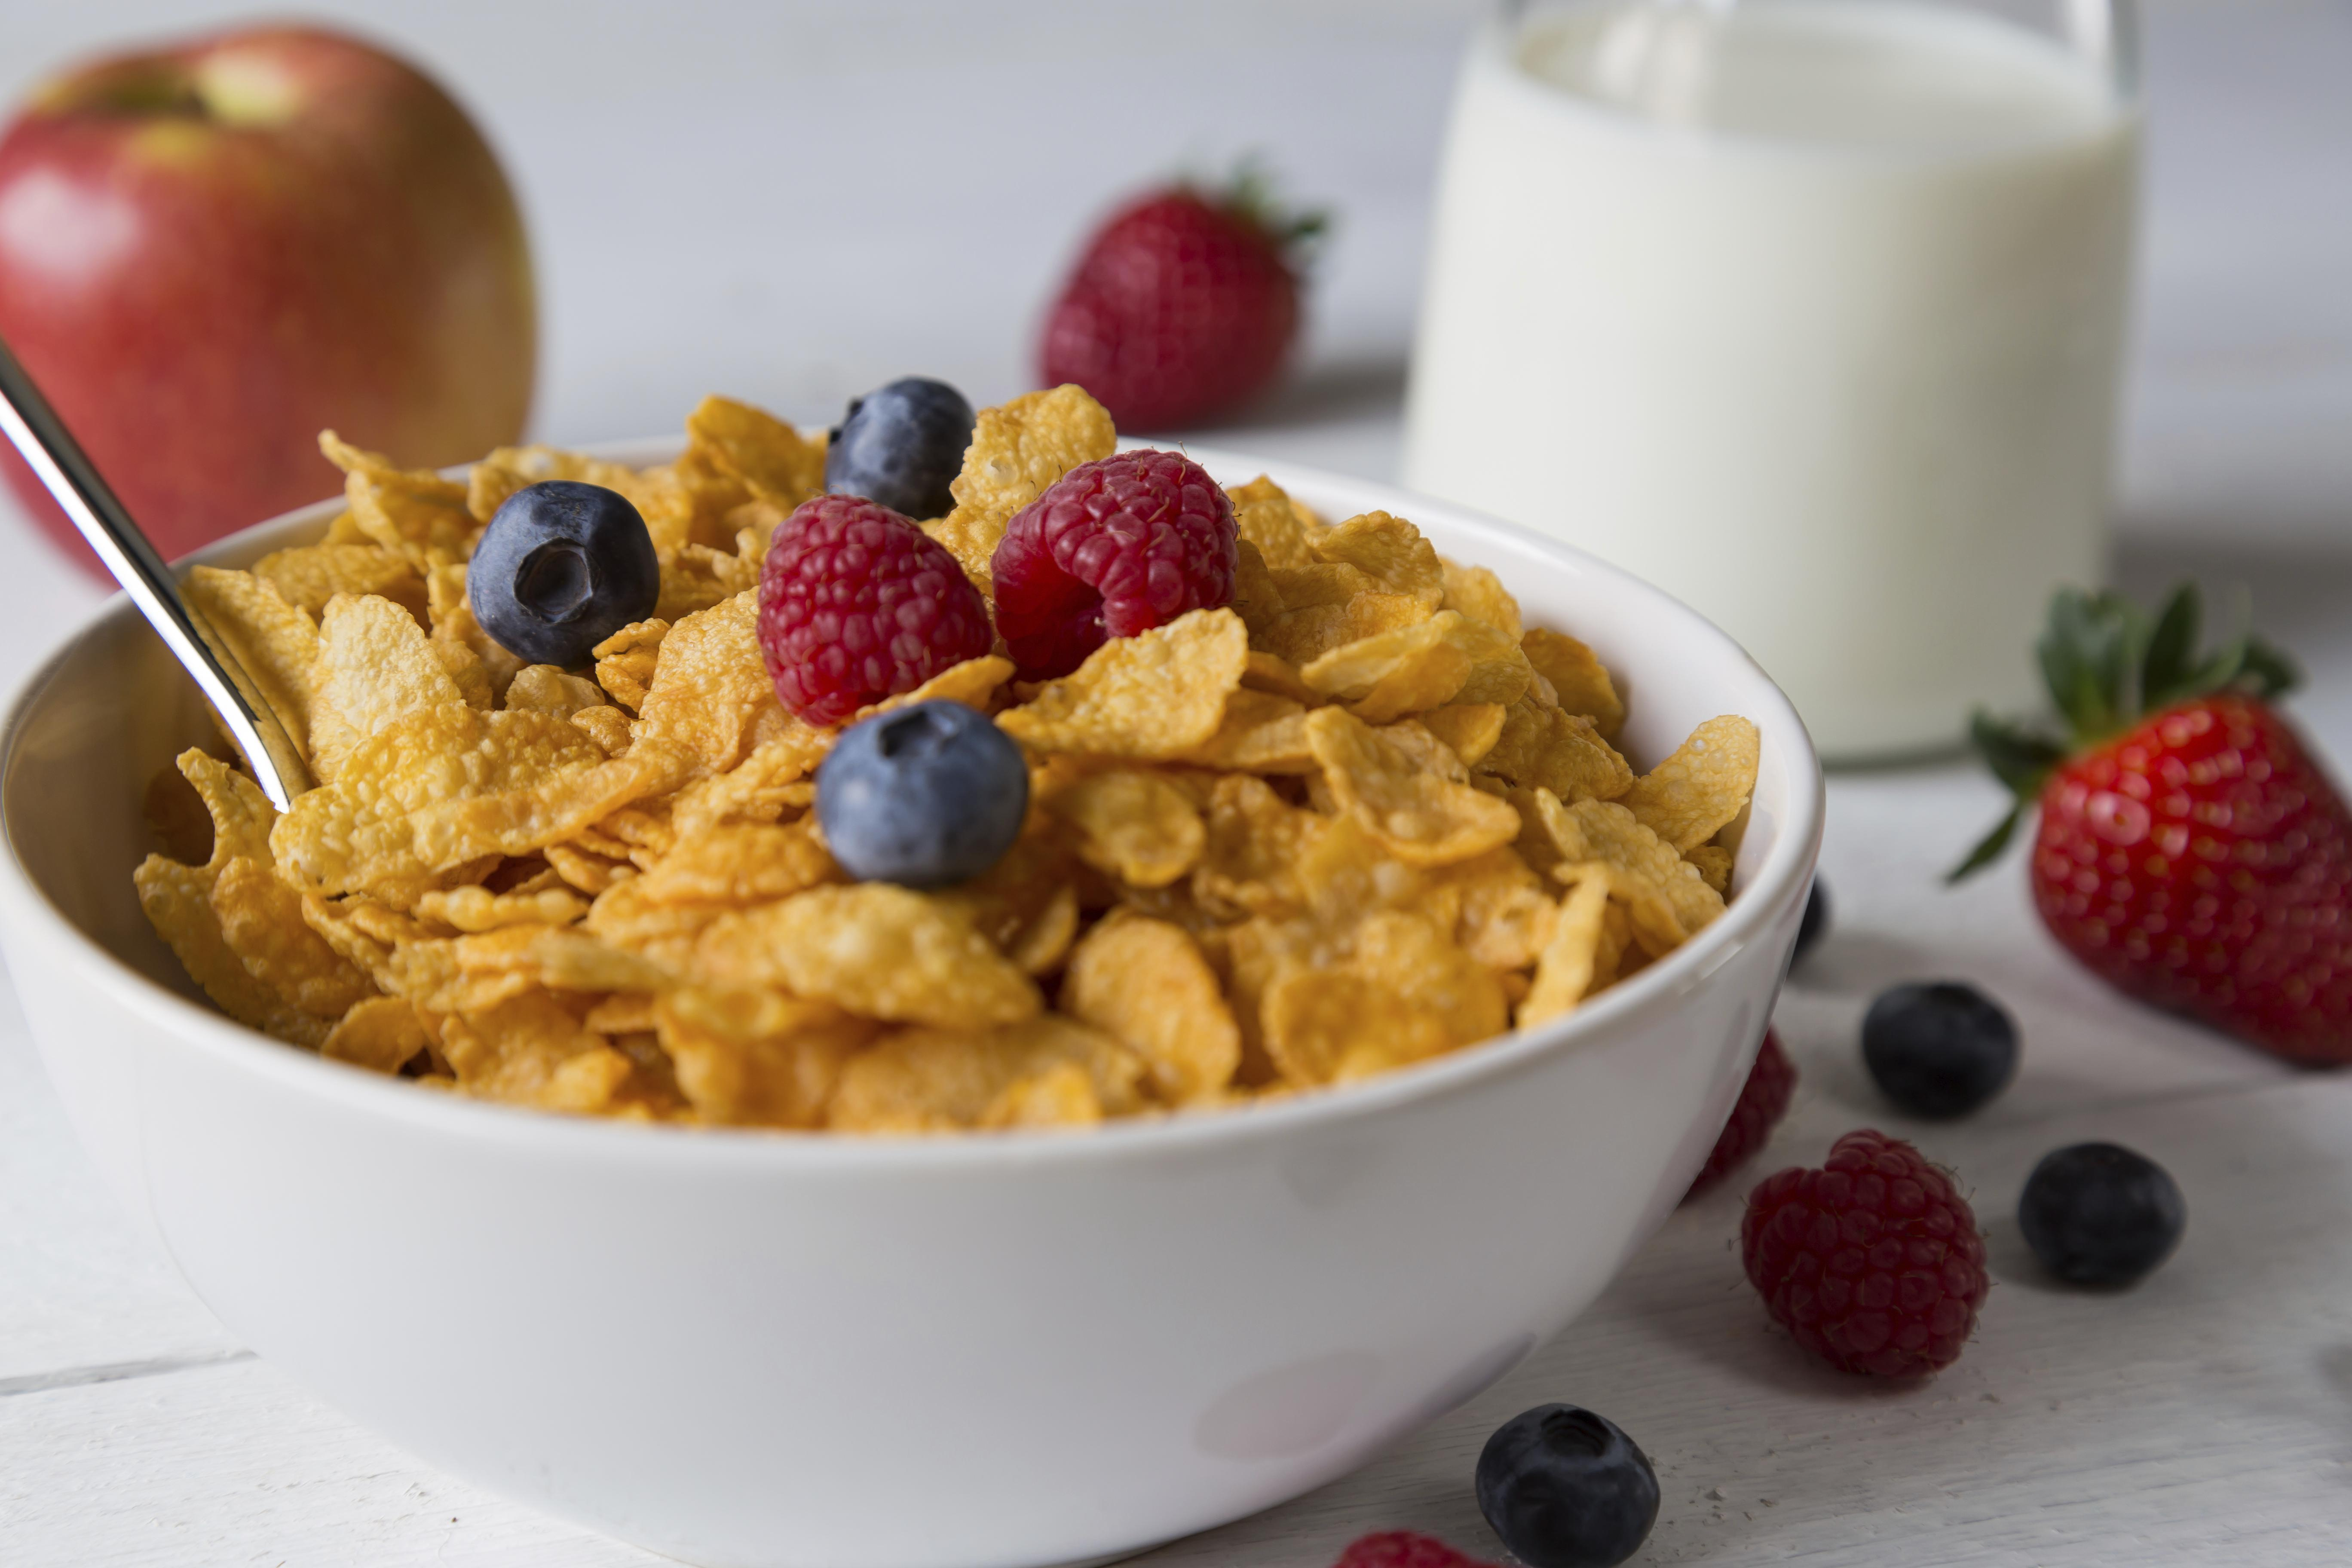 Cornflakes in a bowl